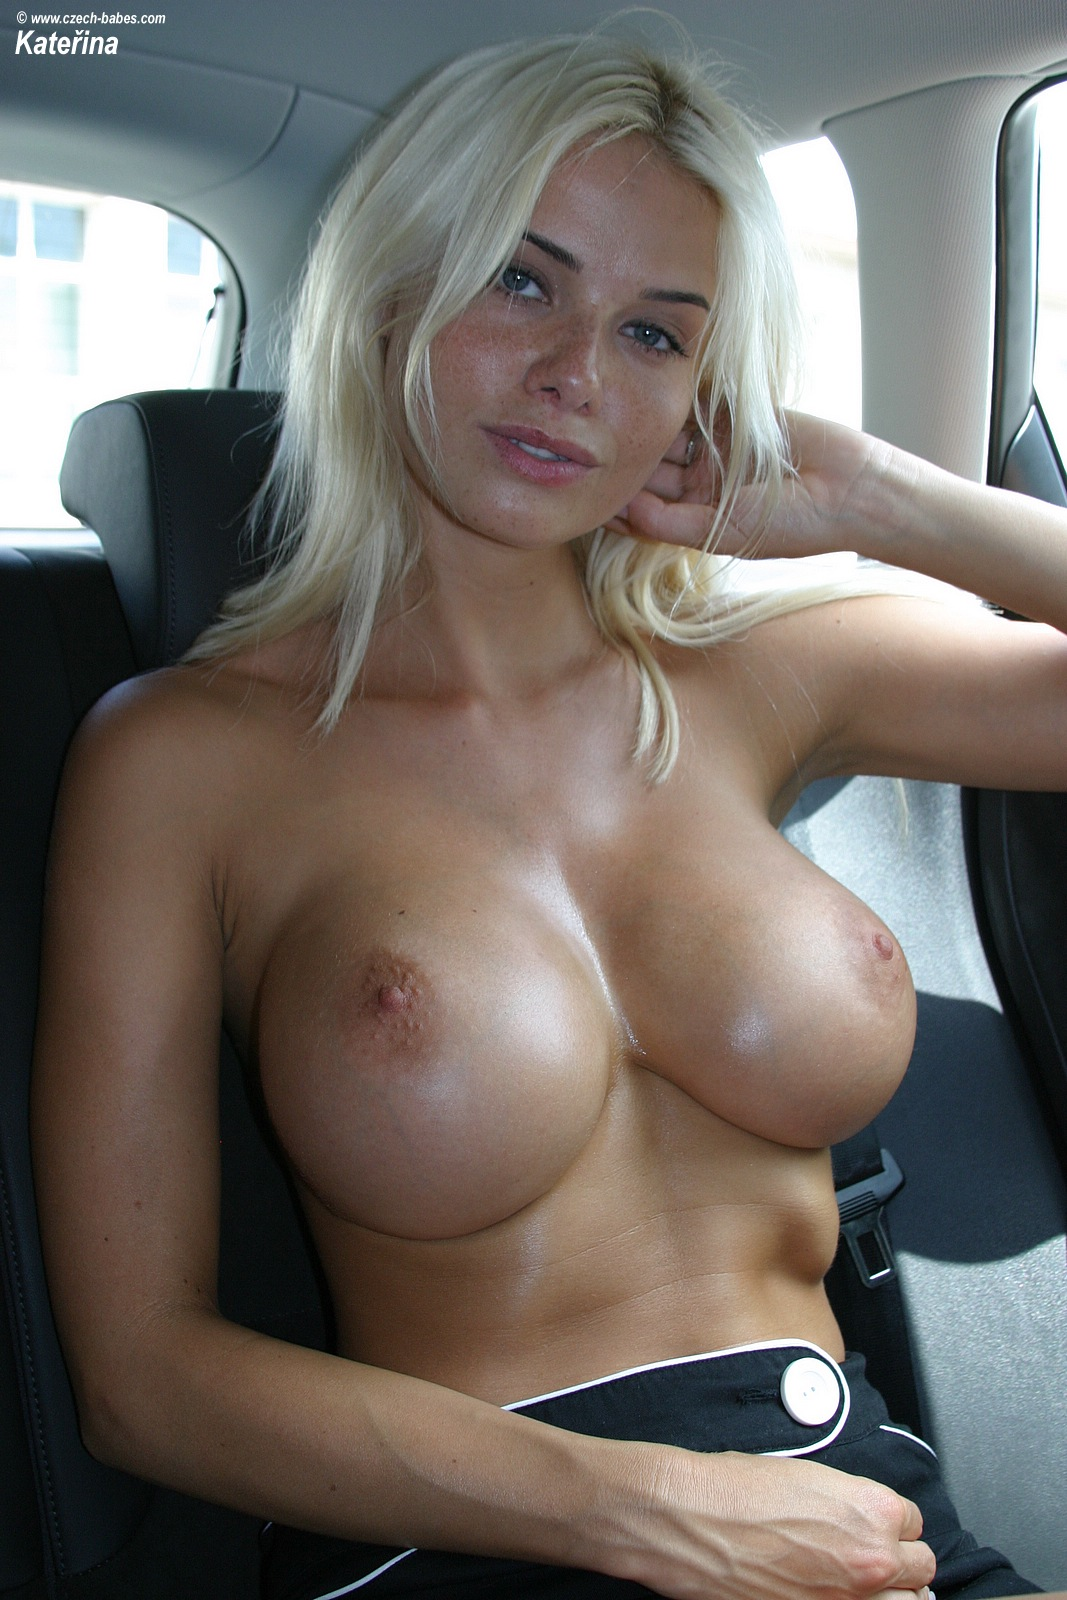 image Angie george hot busty british milf